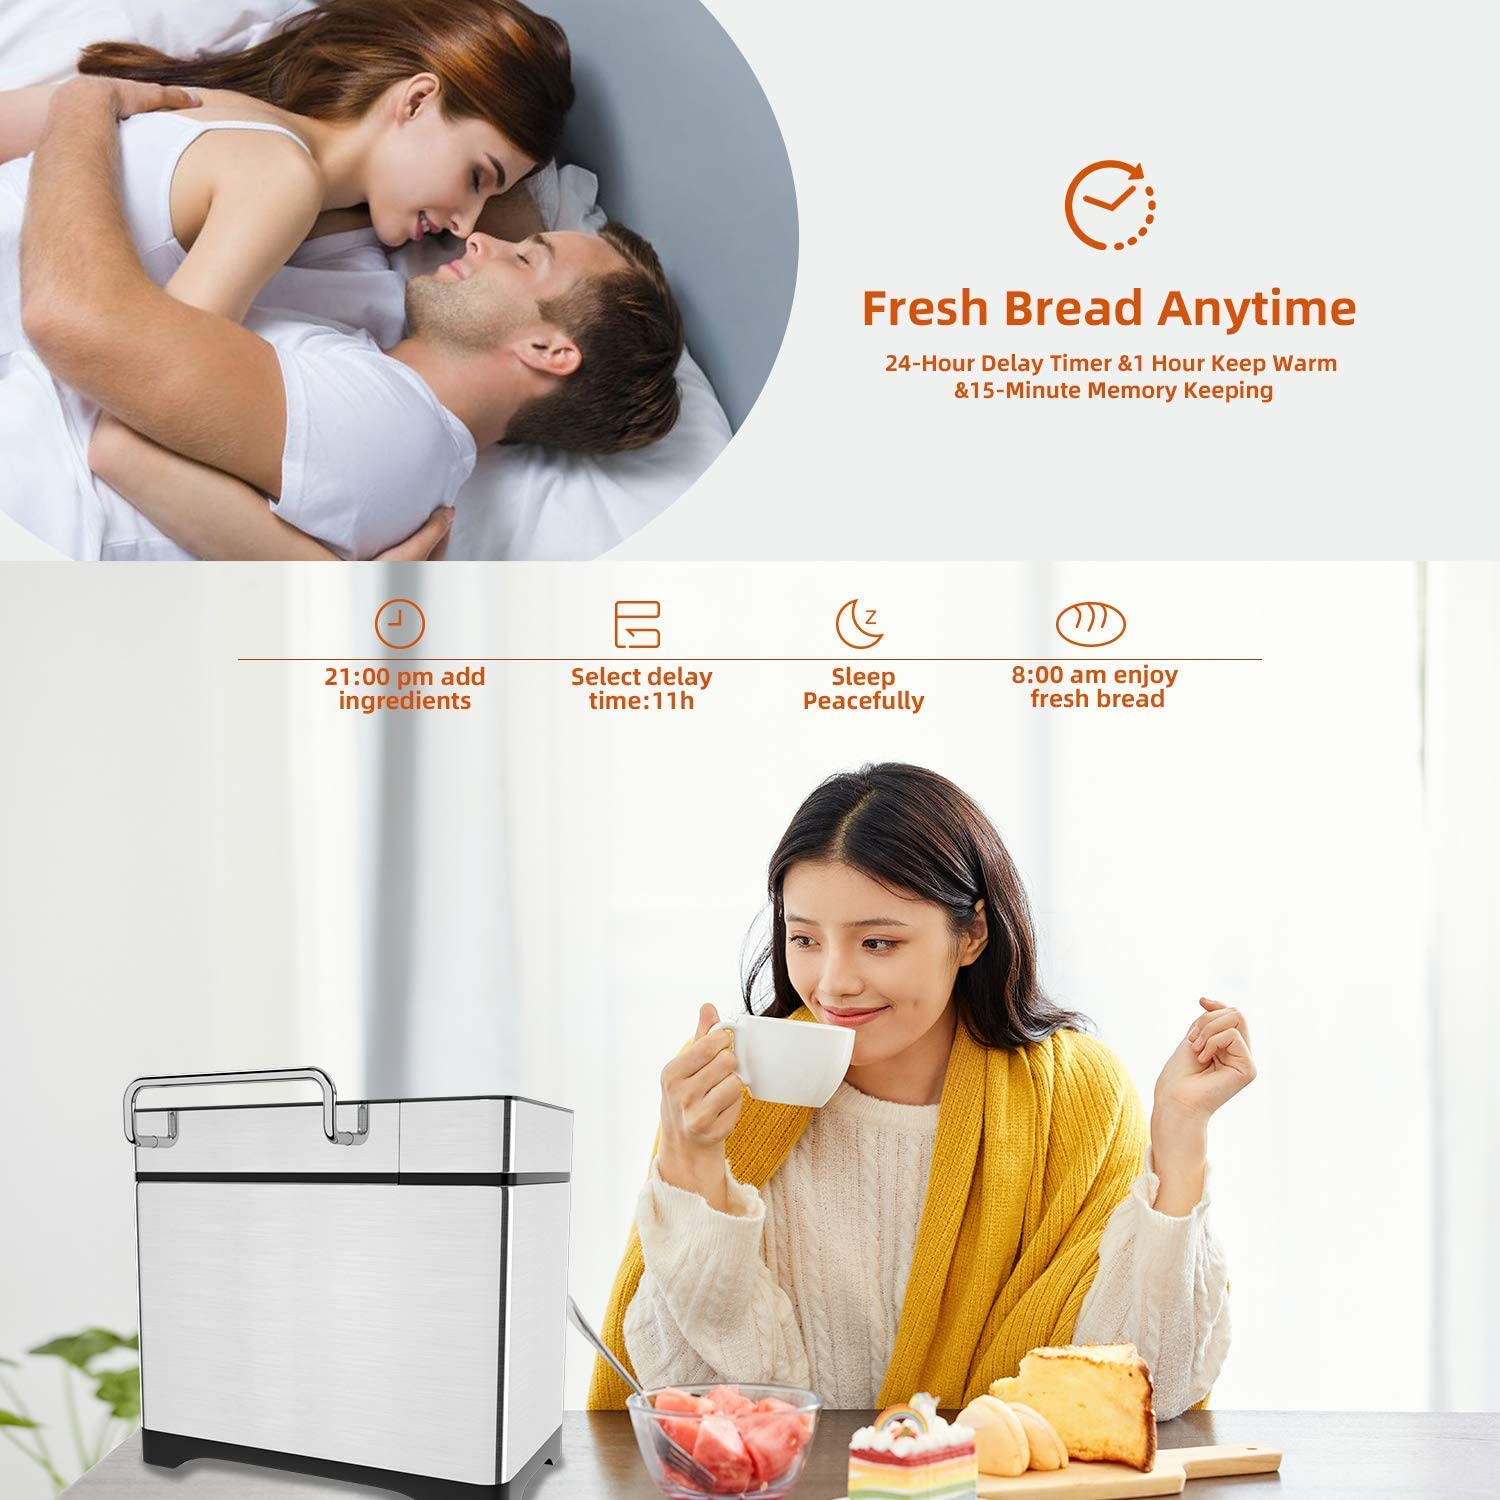 3 Crust Colors Smart Touch Button 3 Loaf Sizes 15 Hours Delay and 1 Hour Keep Warm 17 Programs KBS Automatic Bread Machine 2.2LB Stainless Steel Bread Maker with Fruit Nut Dispenser Ceramic Pan Renewed